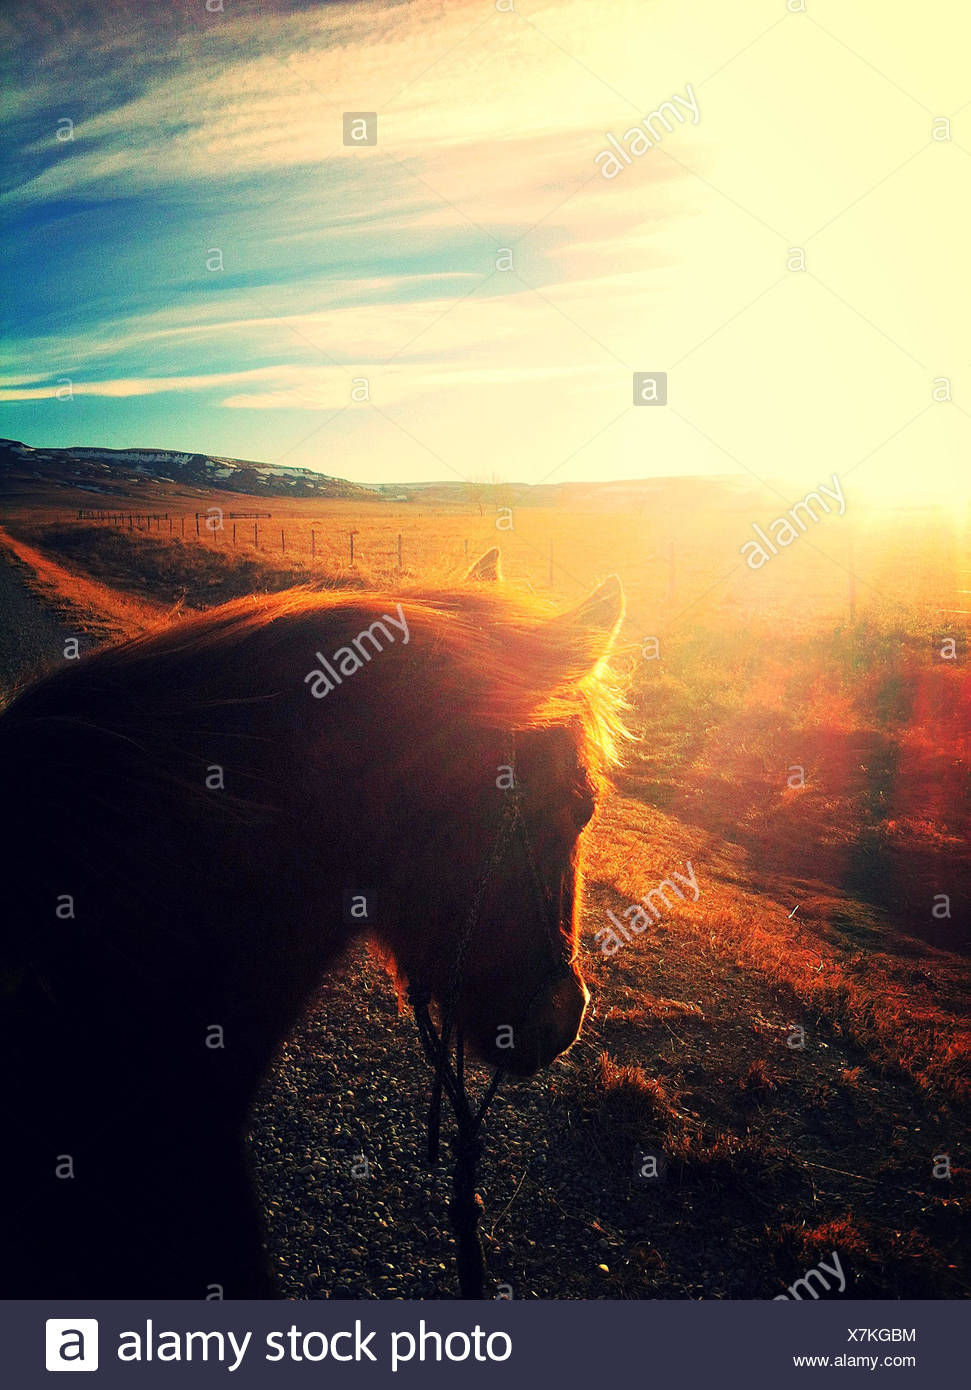 Canada, Alberta, Young horse at sunset - Stock Image